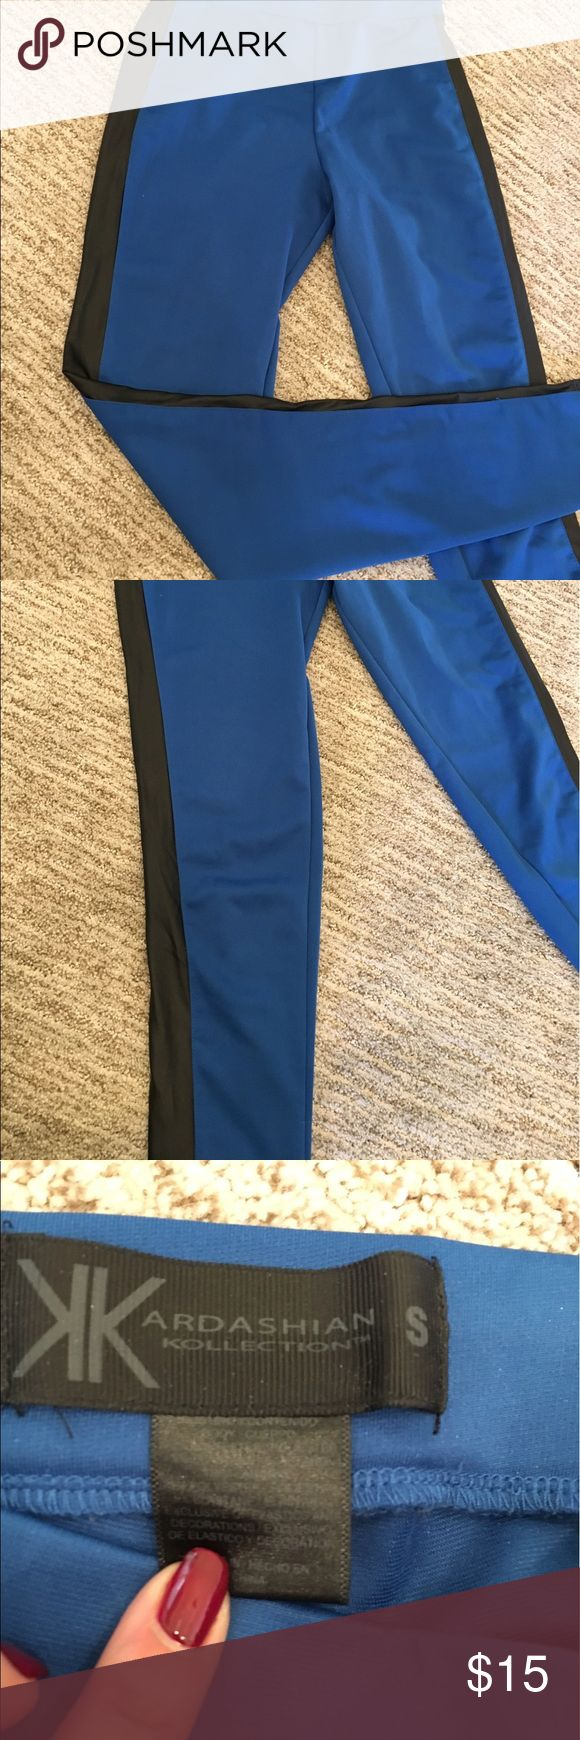 Kardashian Kollection skinny pants/leggings Blue with black sides Kardashian Kollection Pants Skinny